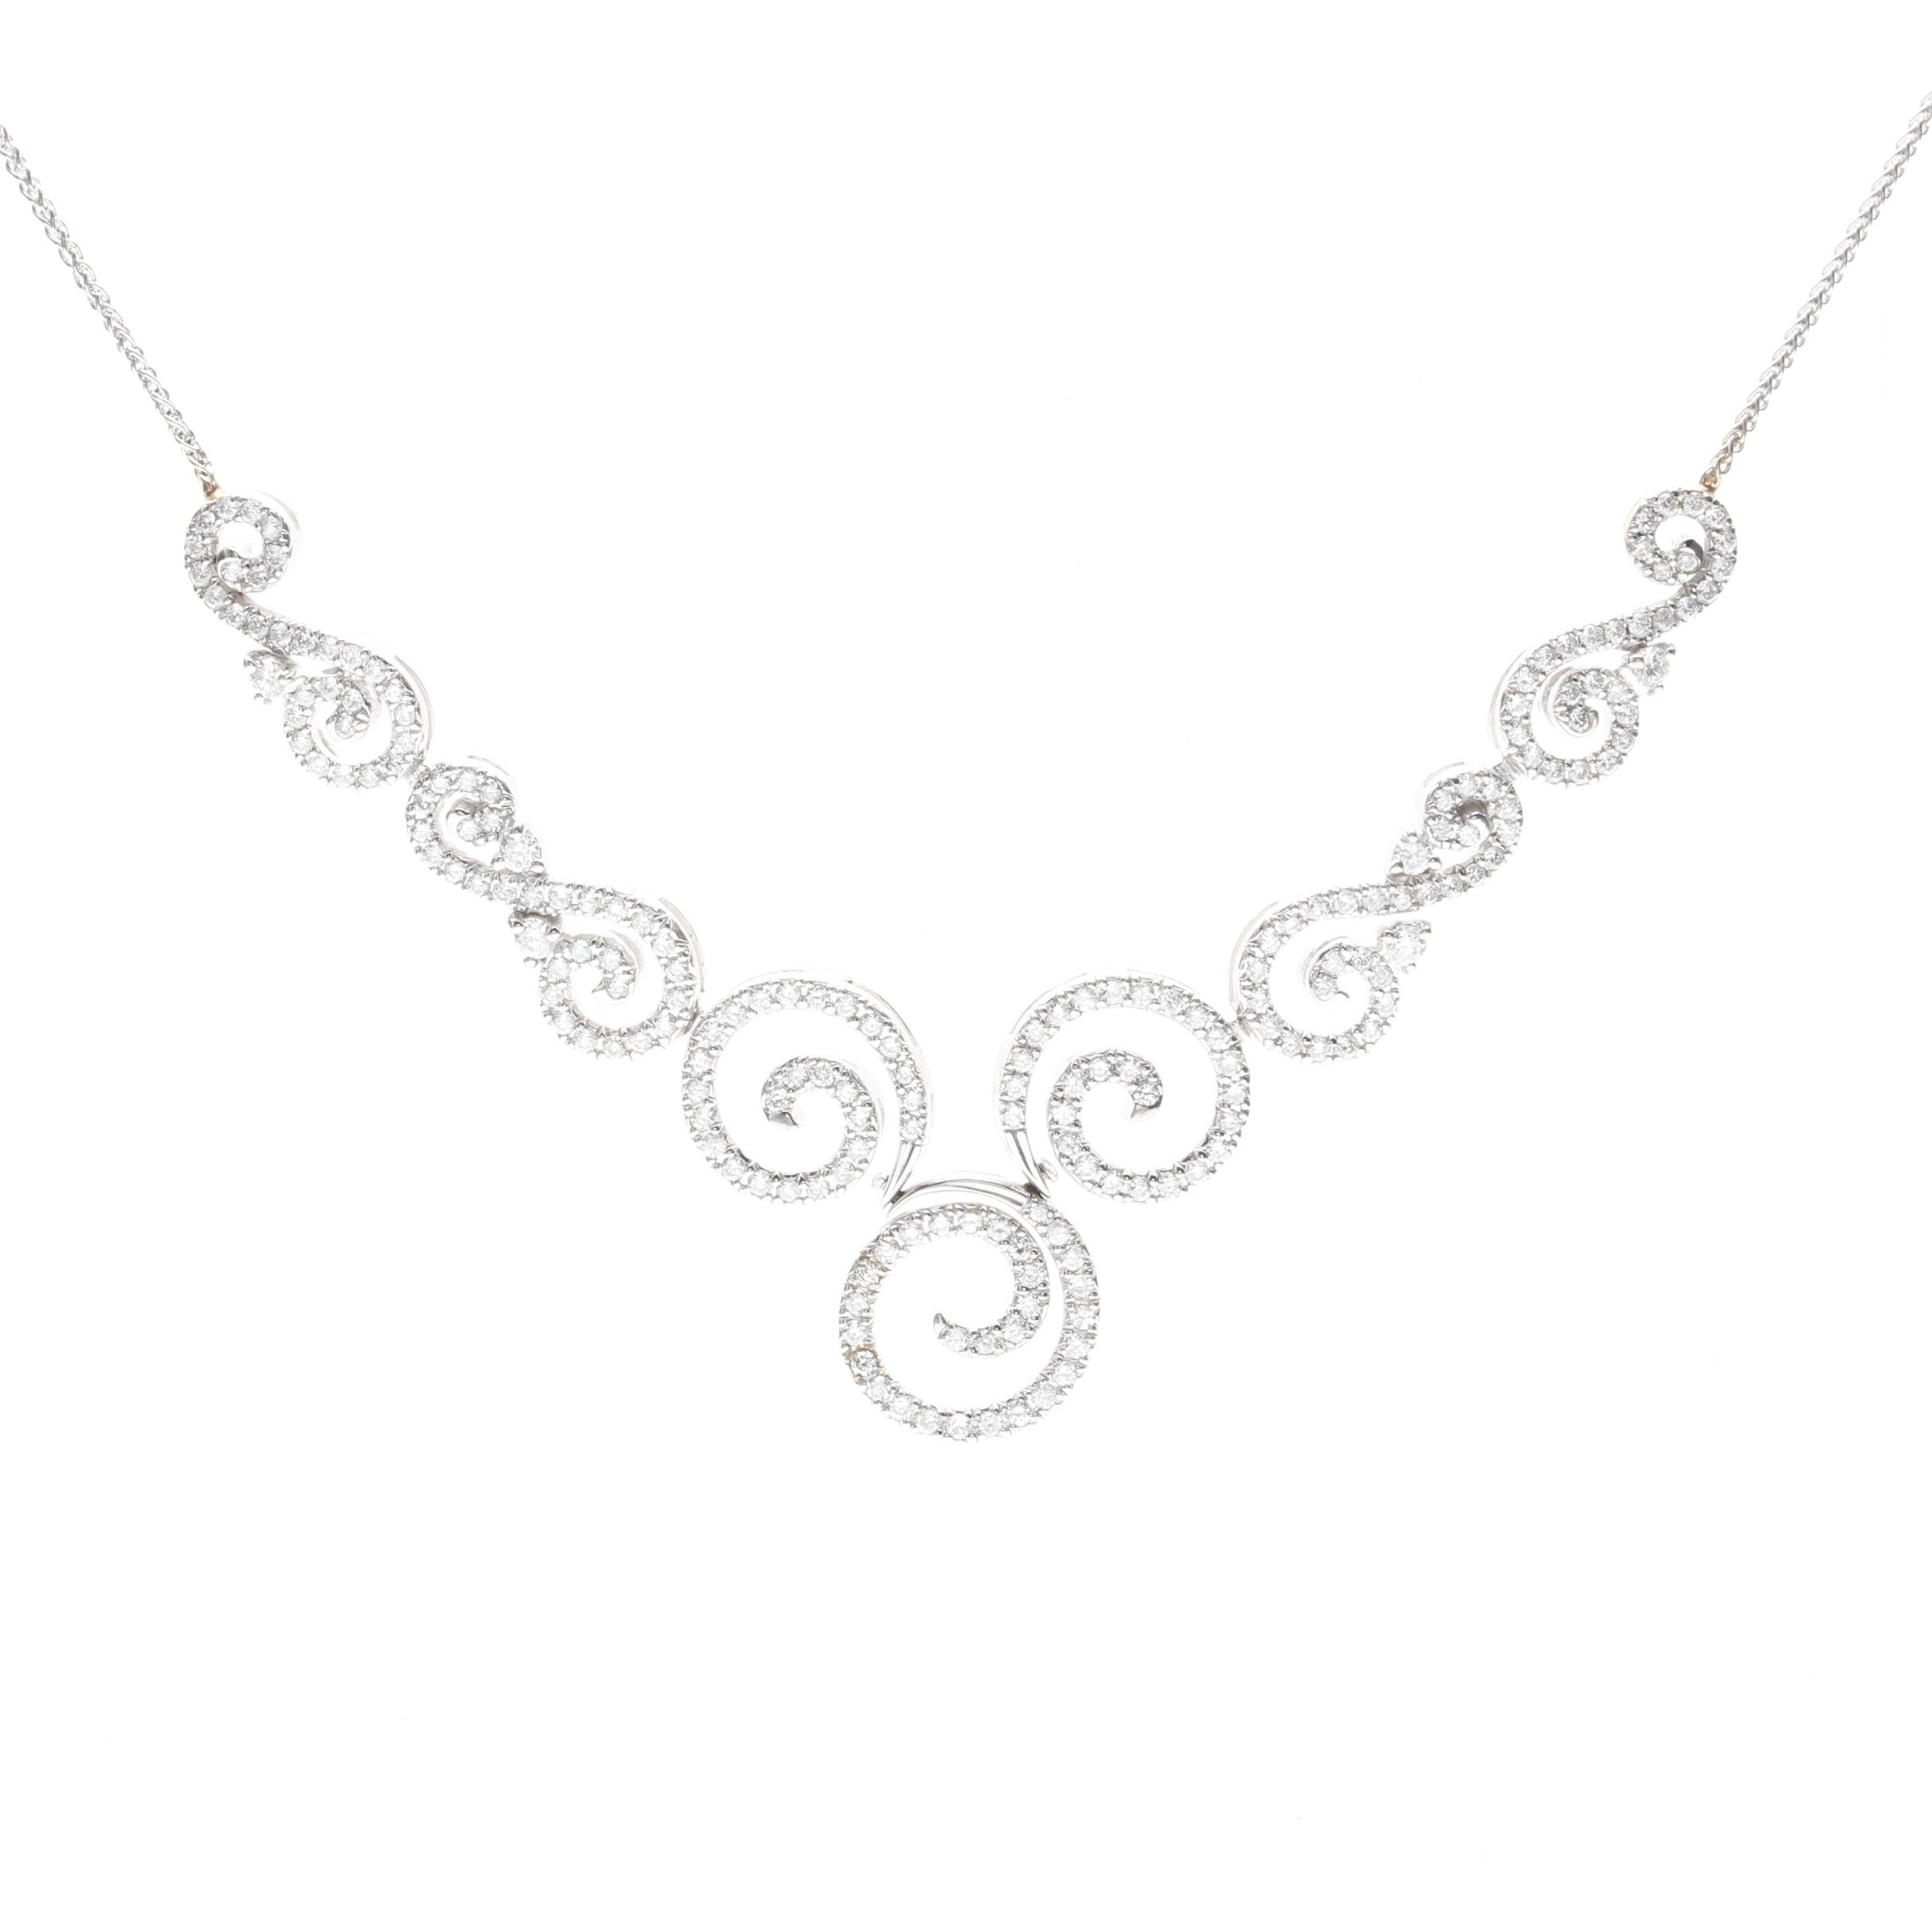 14K White Gold 1.57 CTW Diamond Pendant Necklace